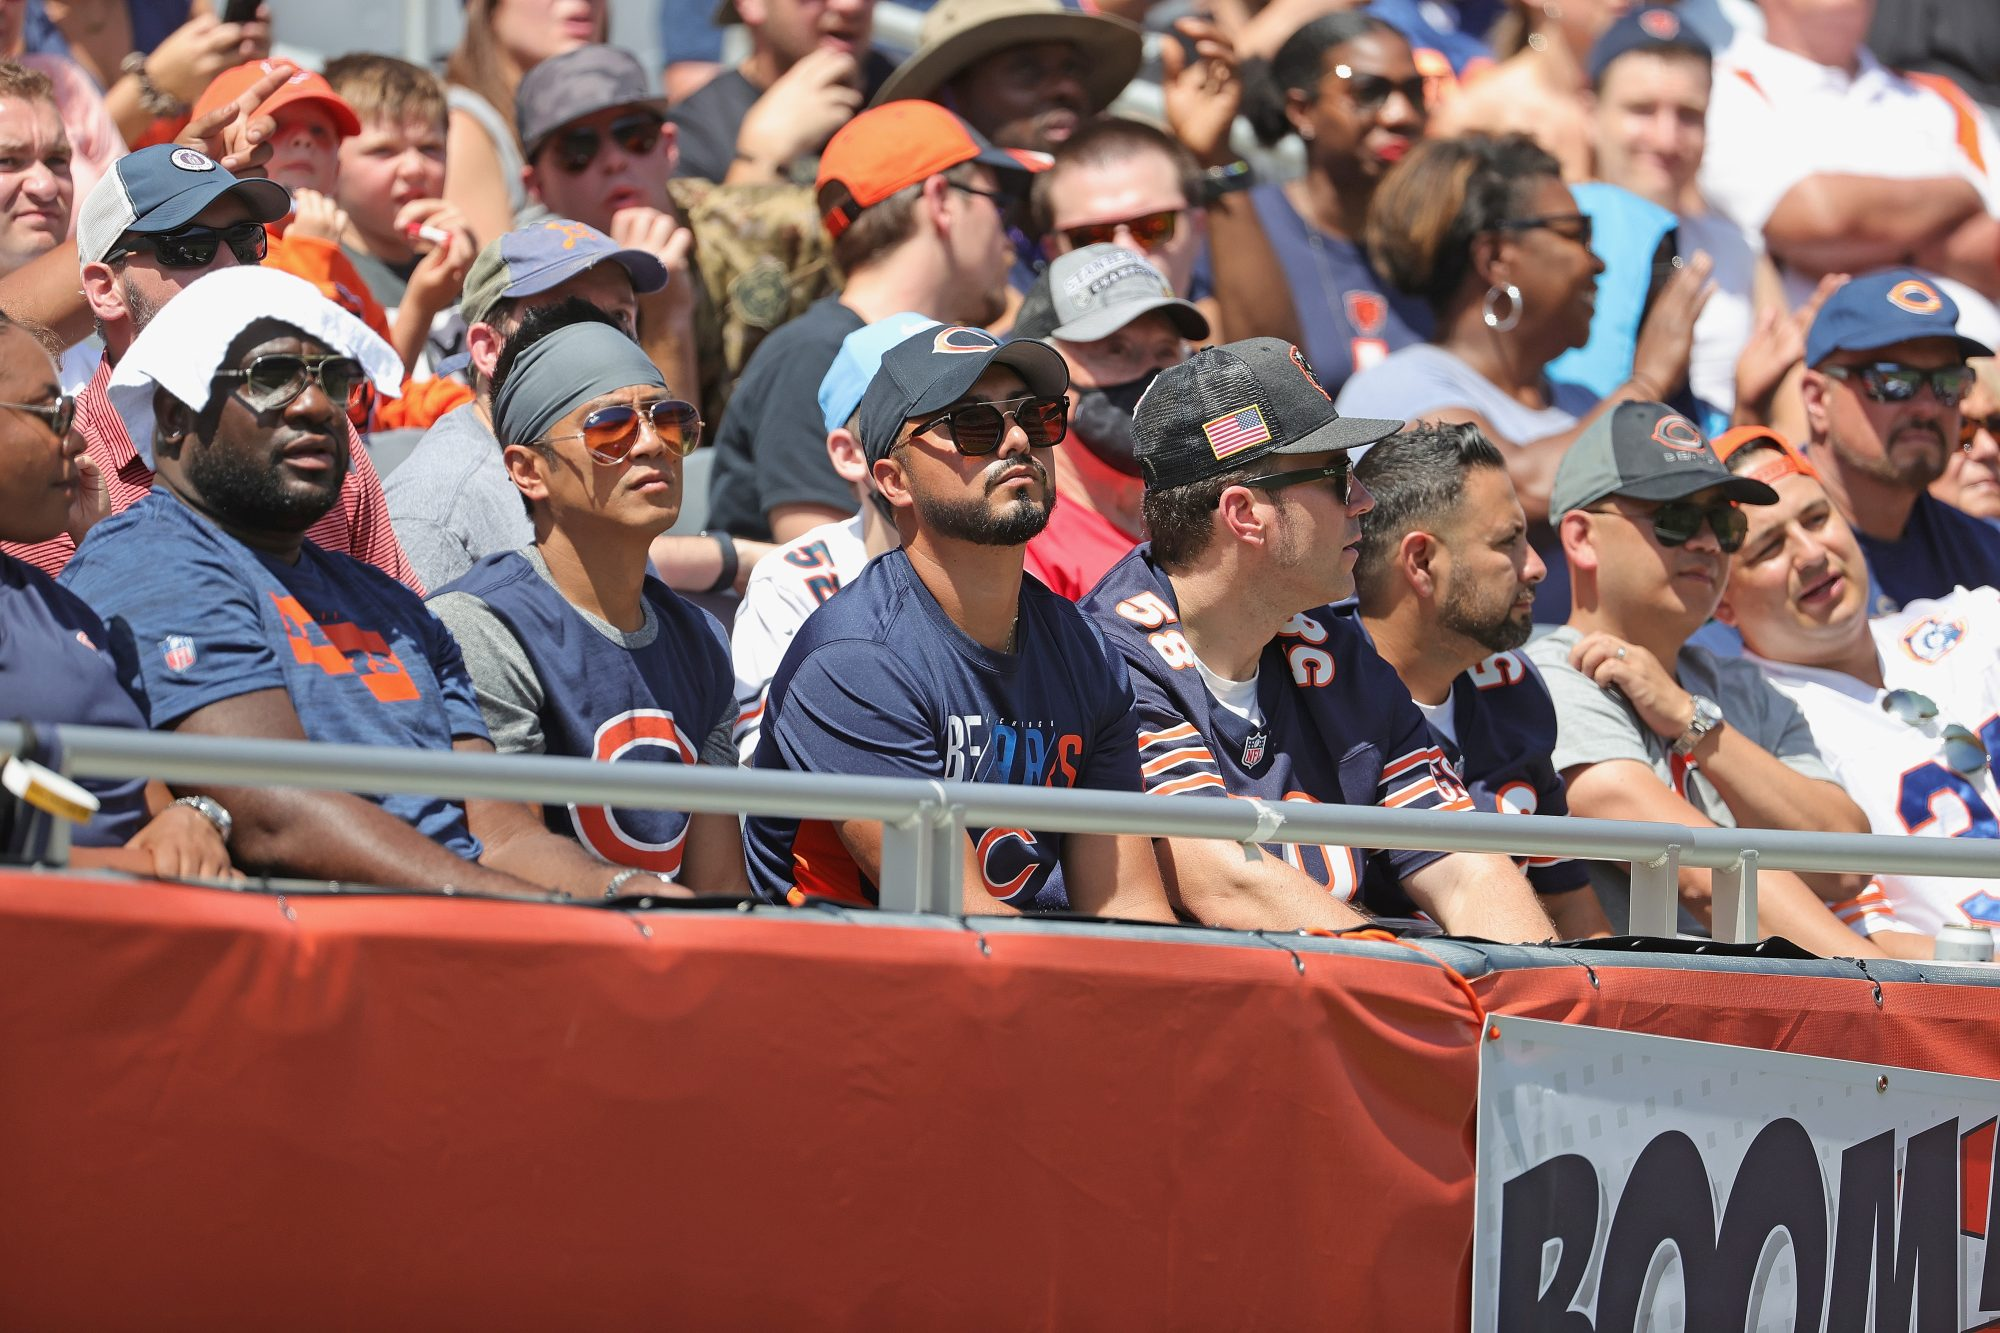 Fans watch as the Chicago Bears take on the Miami Dolphins during a preseason game at Soldier Field on August 14, 2021 in Chicago, Illinois. The Bears defeated the Dolphins 20-13.